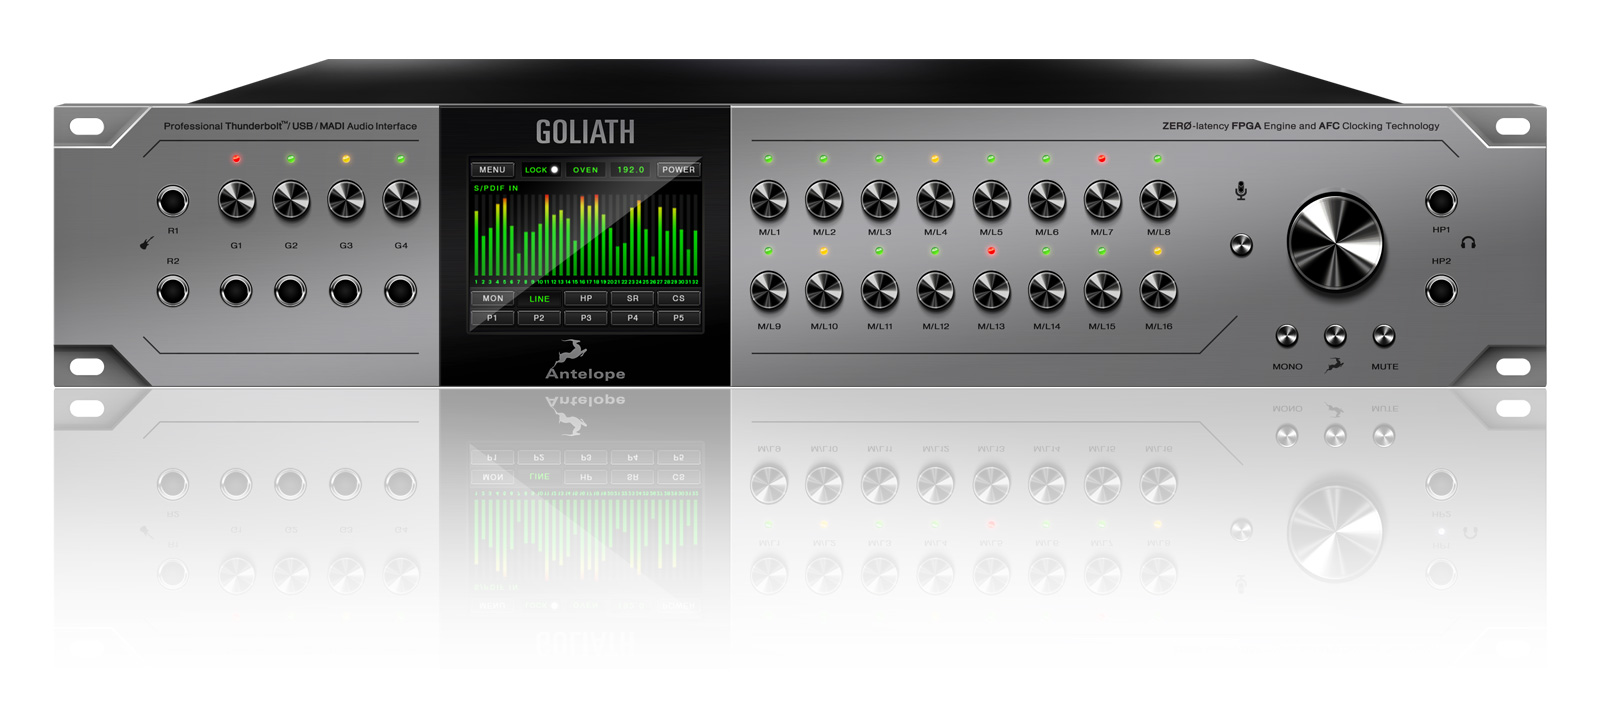 Goliath front - audio interface